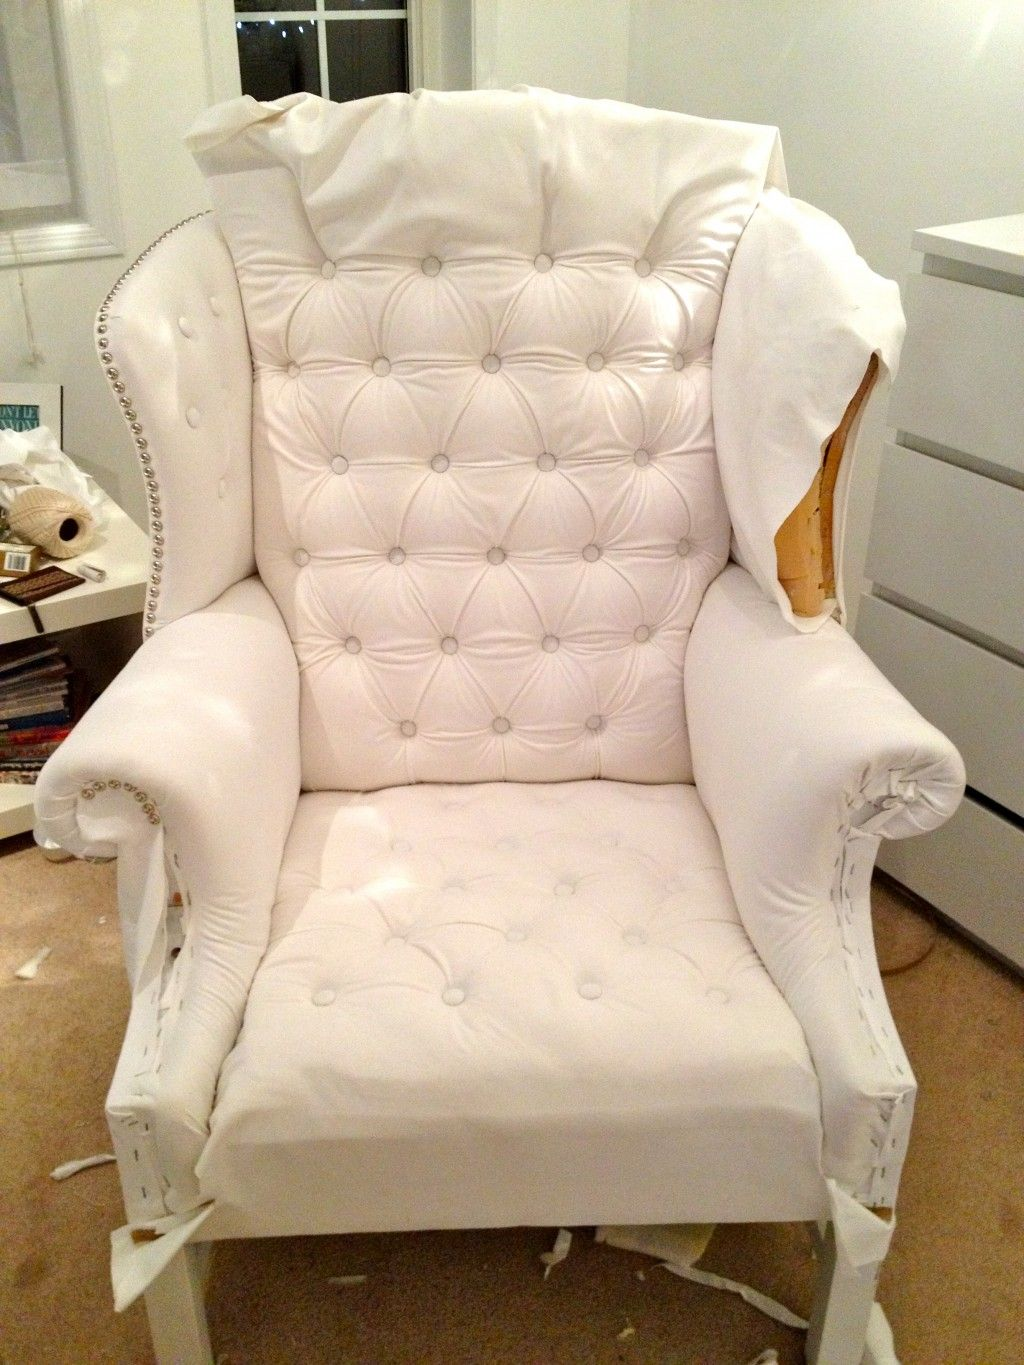 reupholster chair drop cloth and reupholster chair dallas ideas